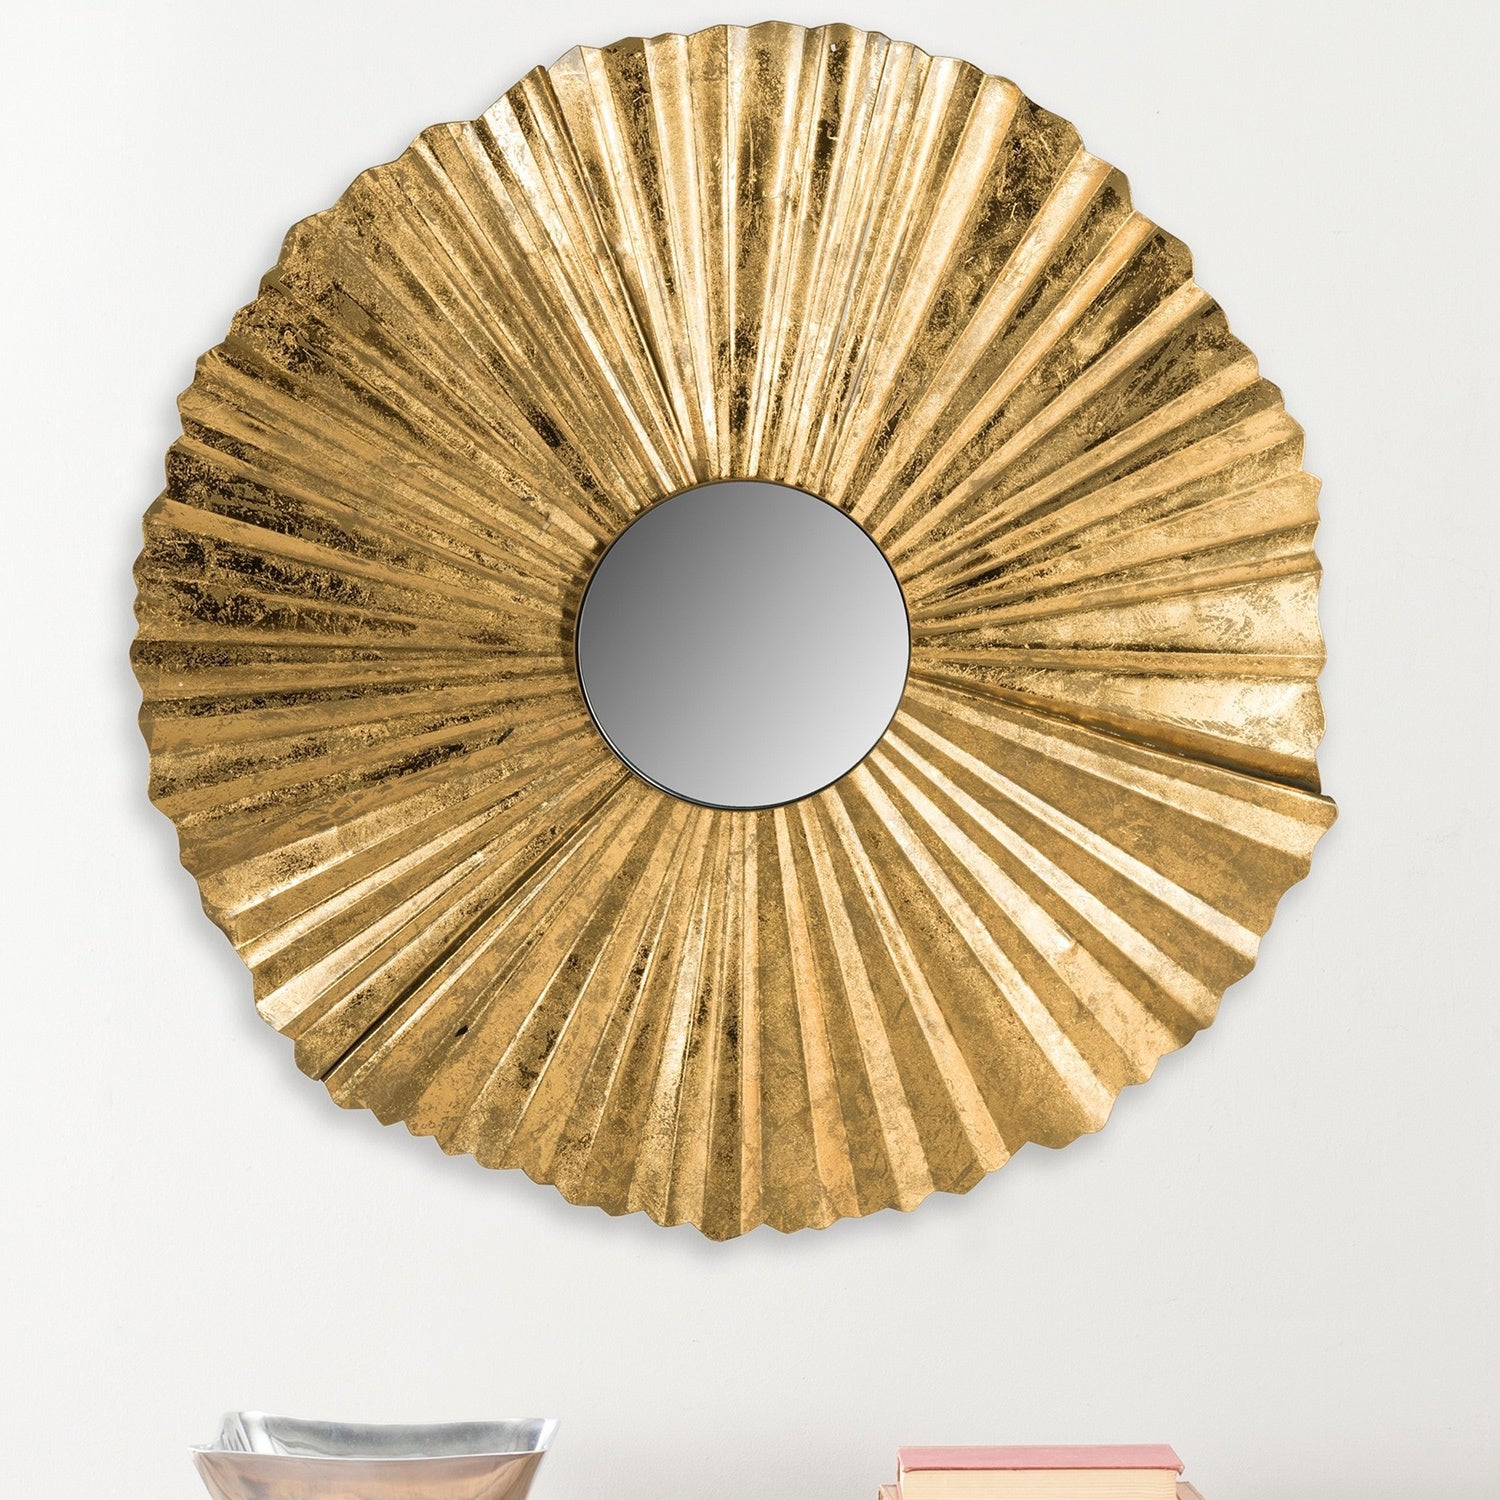 Safavieh Mae Fan Gold 35-inch Sunburst Mirror - Free Shipping Today ...